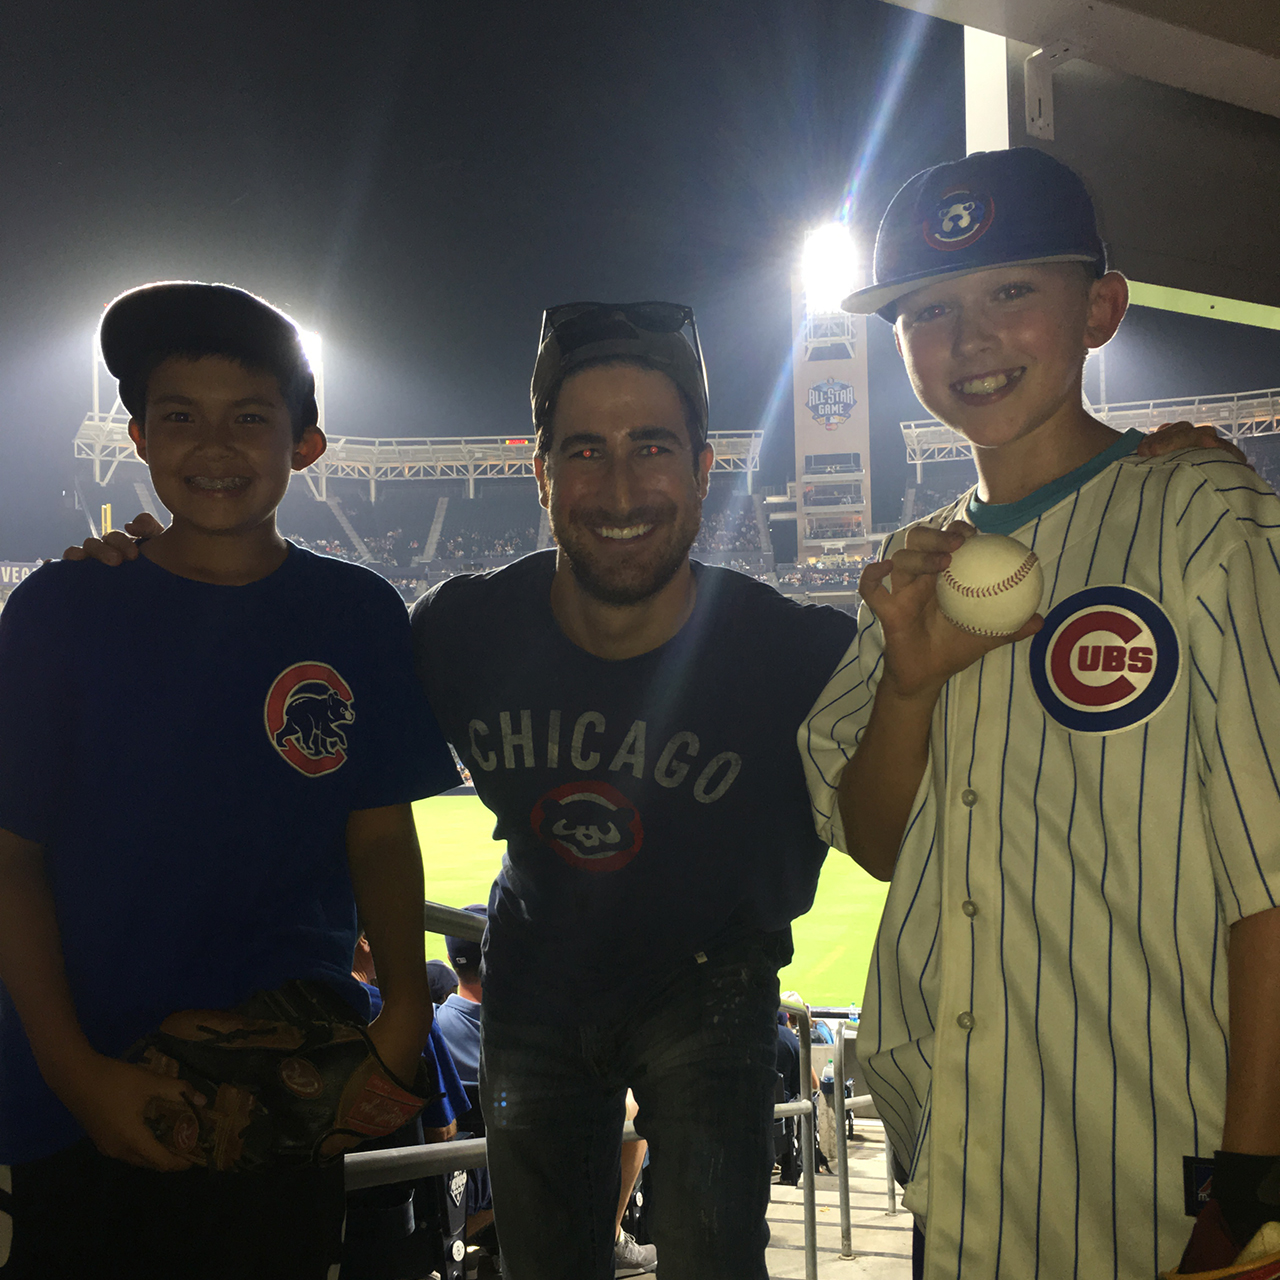 These Cubs fans were so, so excited to catch a Kris Bryant ...